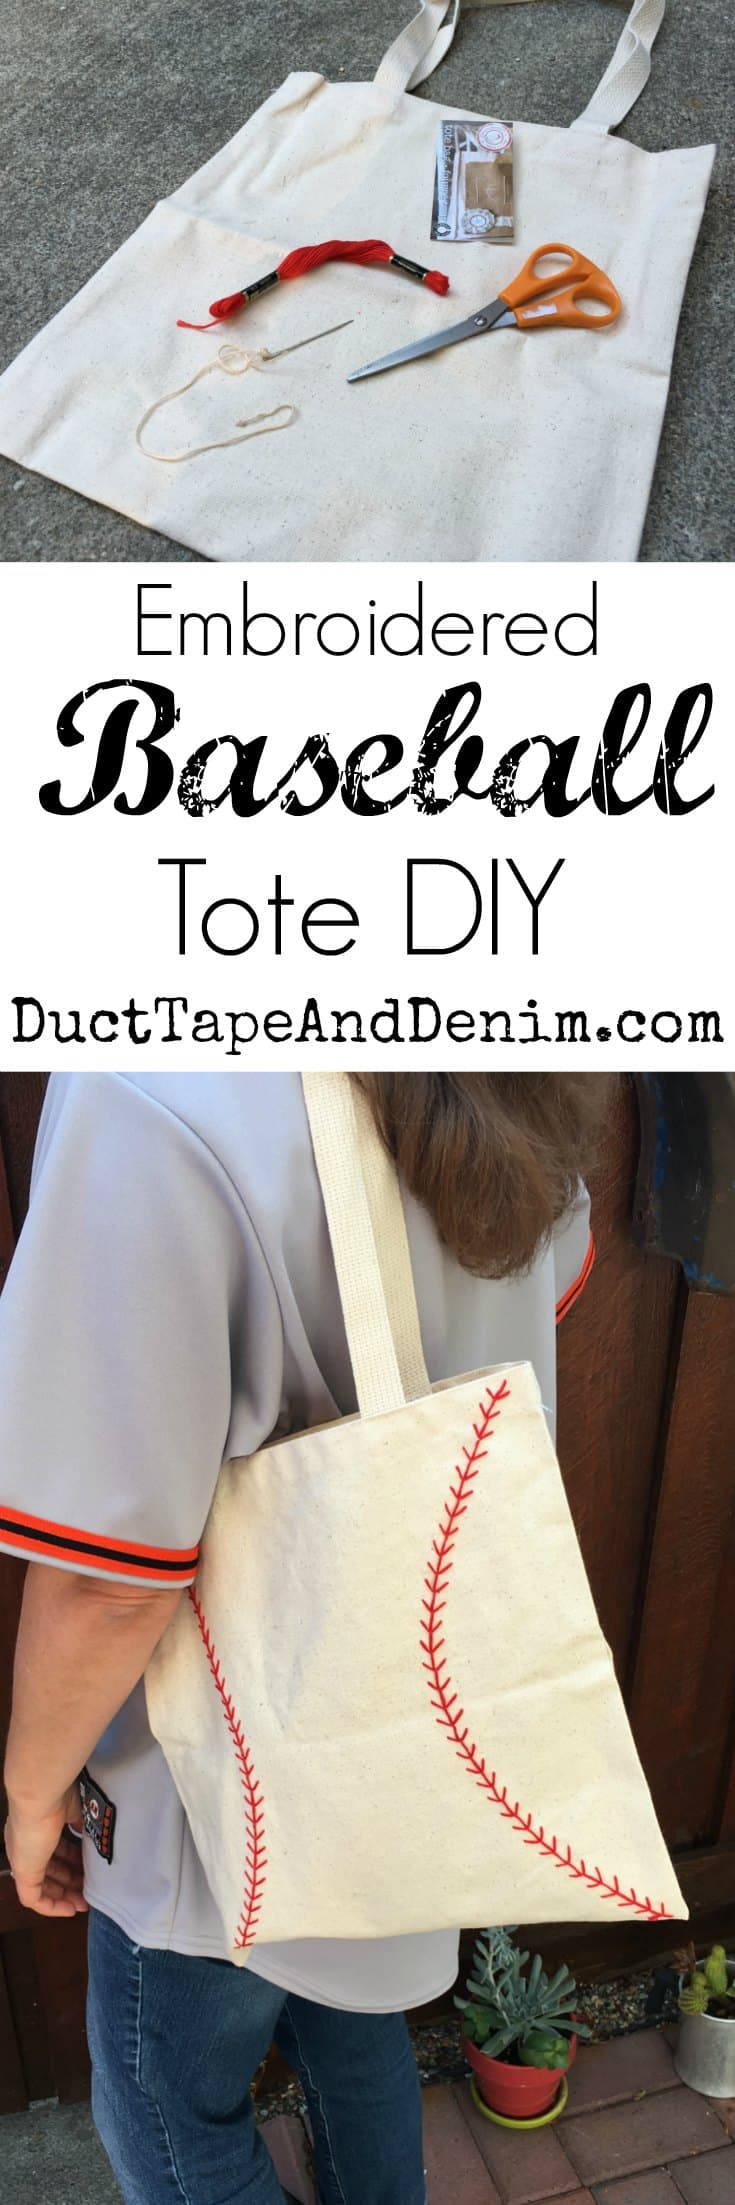 Embroidered baseball bag DIY, tote bag tutorial on DuctTapeAndDenim.com